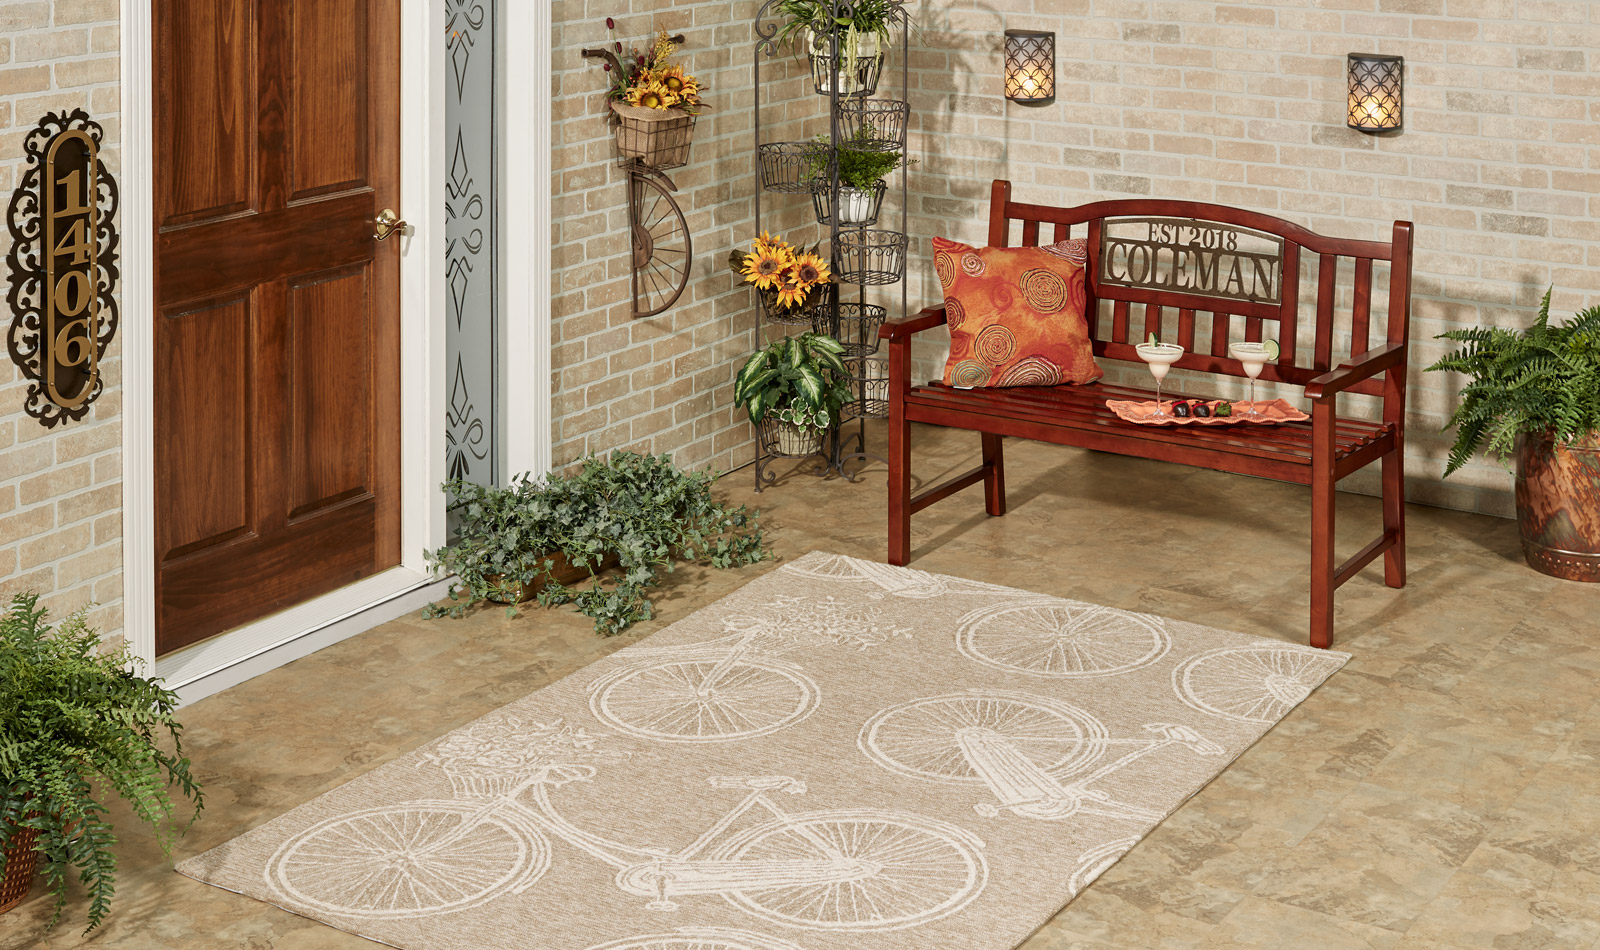 Get the Look - Vintage Bicycle Almond Patio Entry